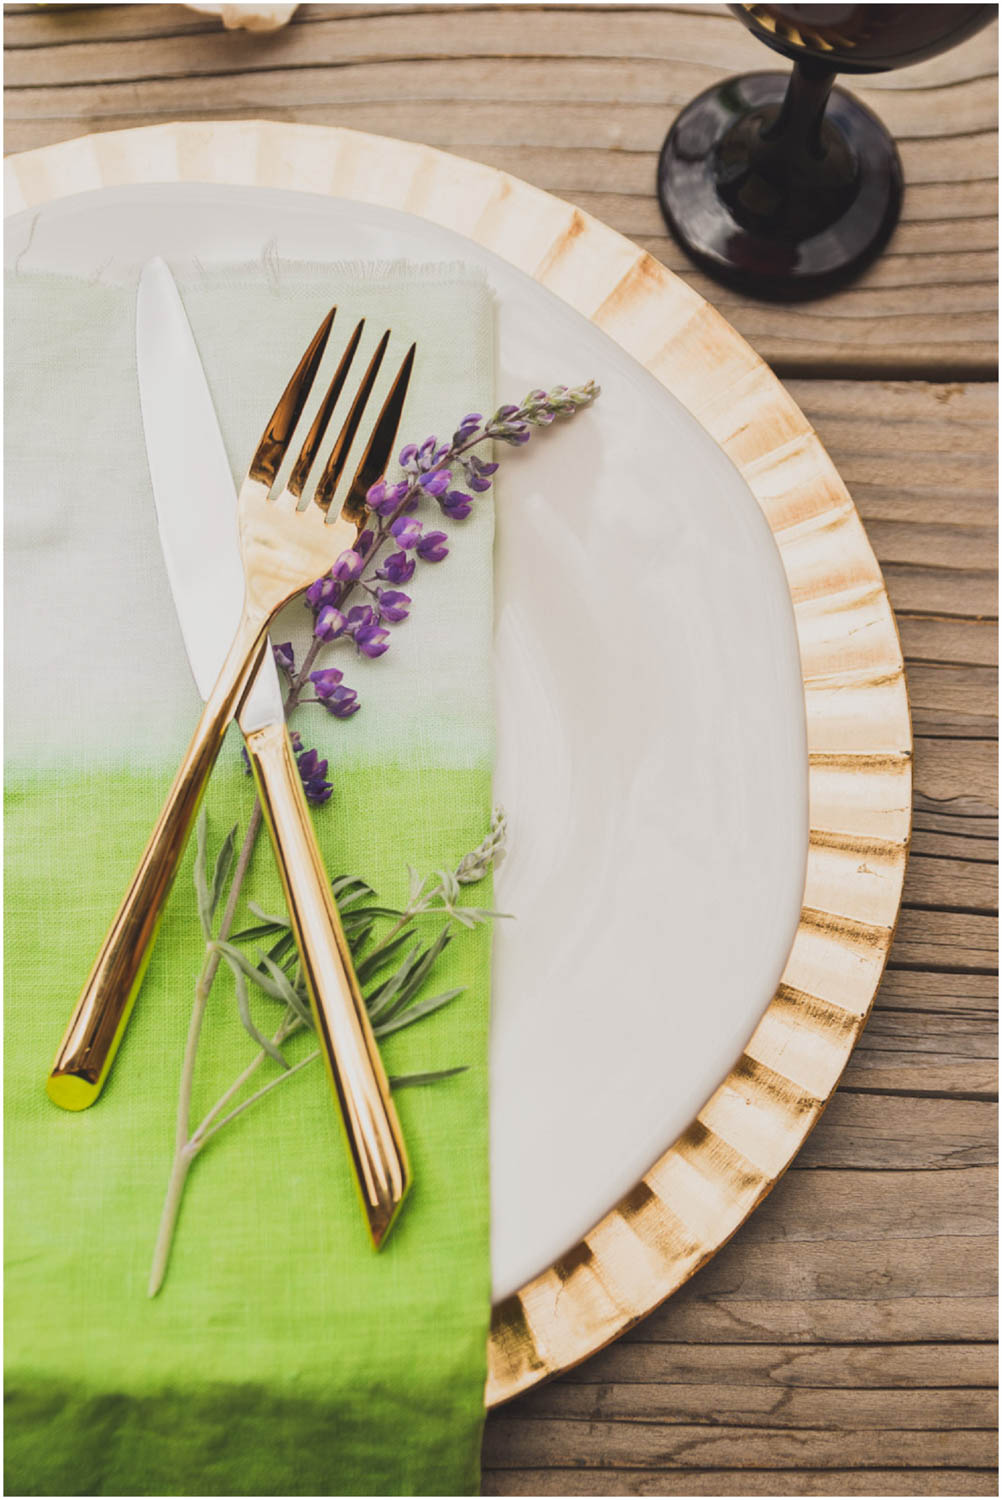 wedding sweetheart table place setting with gold flatware and wild lupine